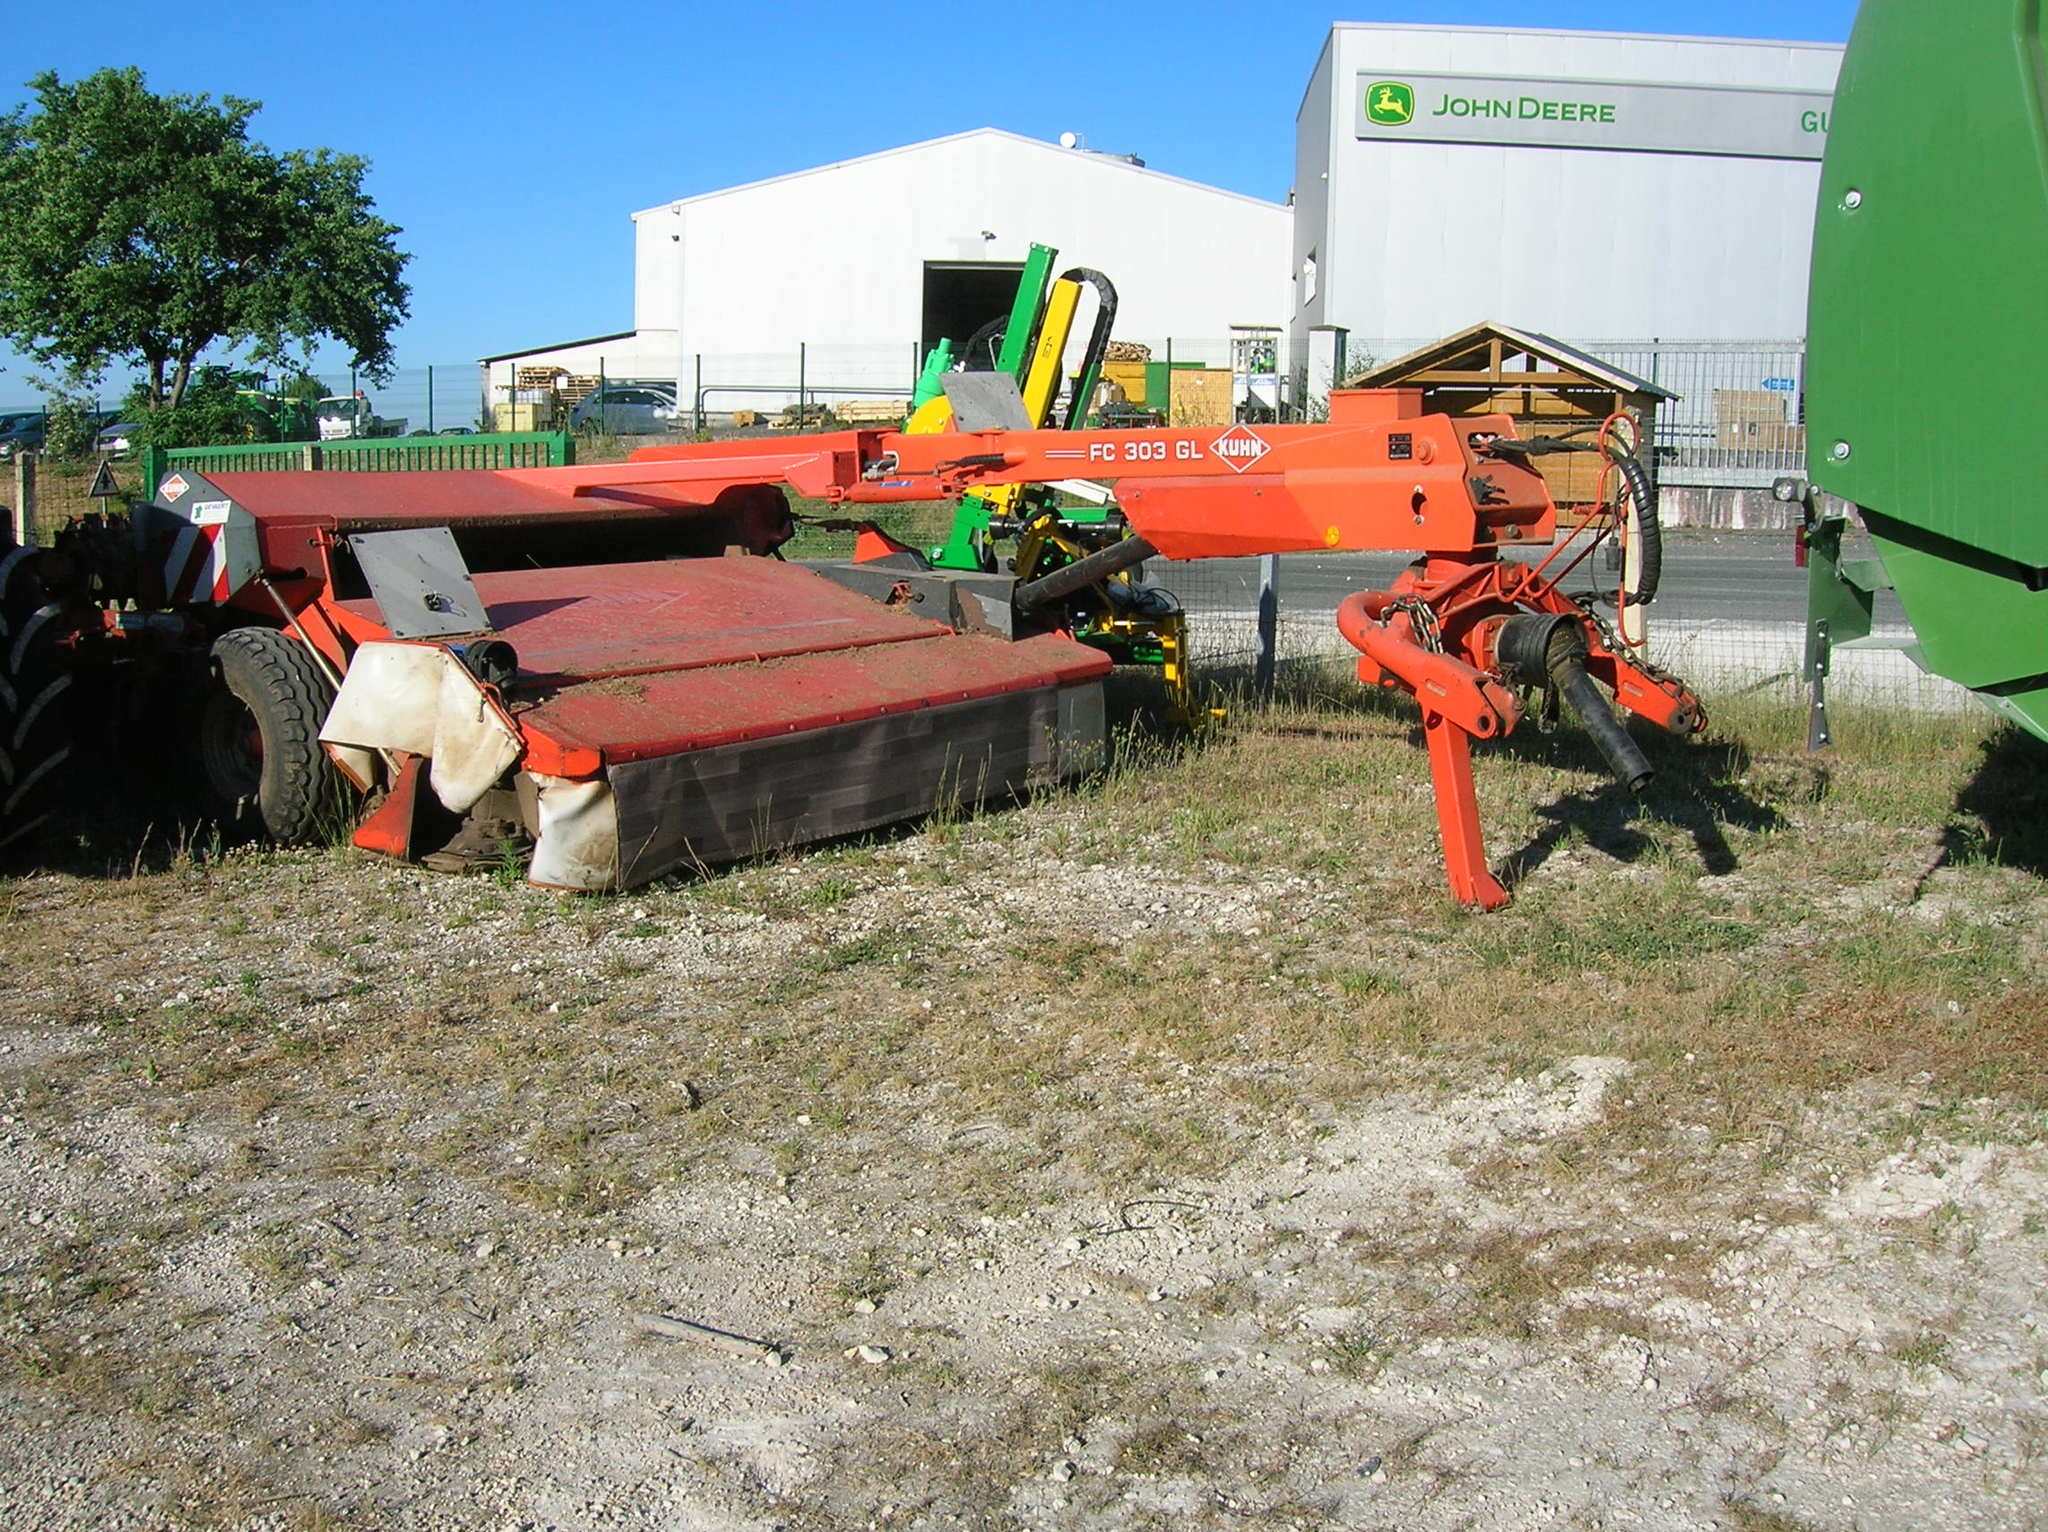 Faucheuse conditionneuse Kuhn FAUCHEUSE FC 303 GL - 1